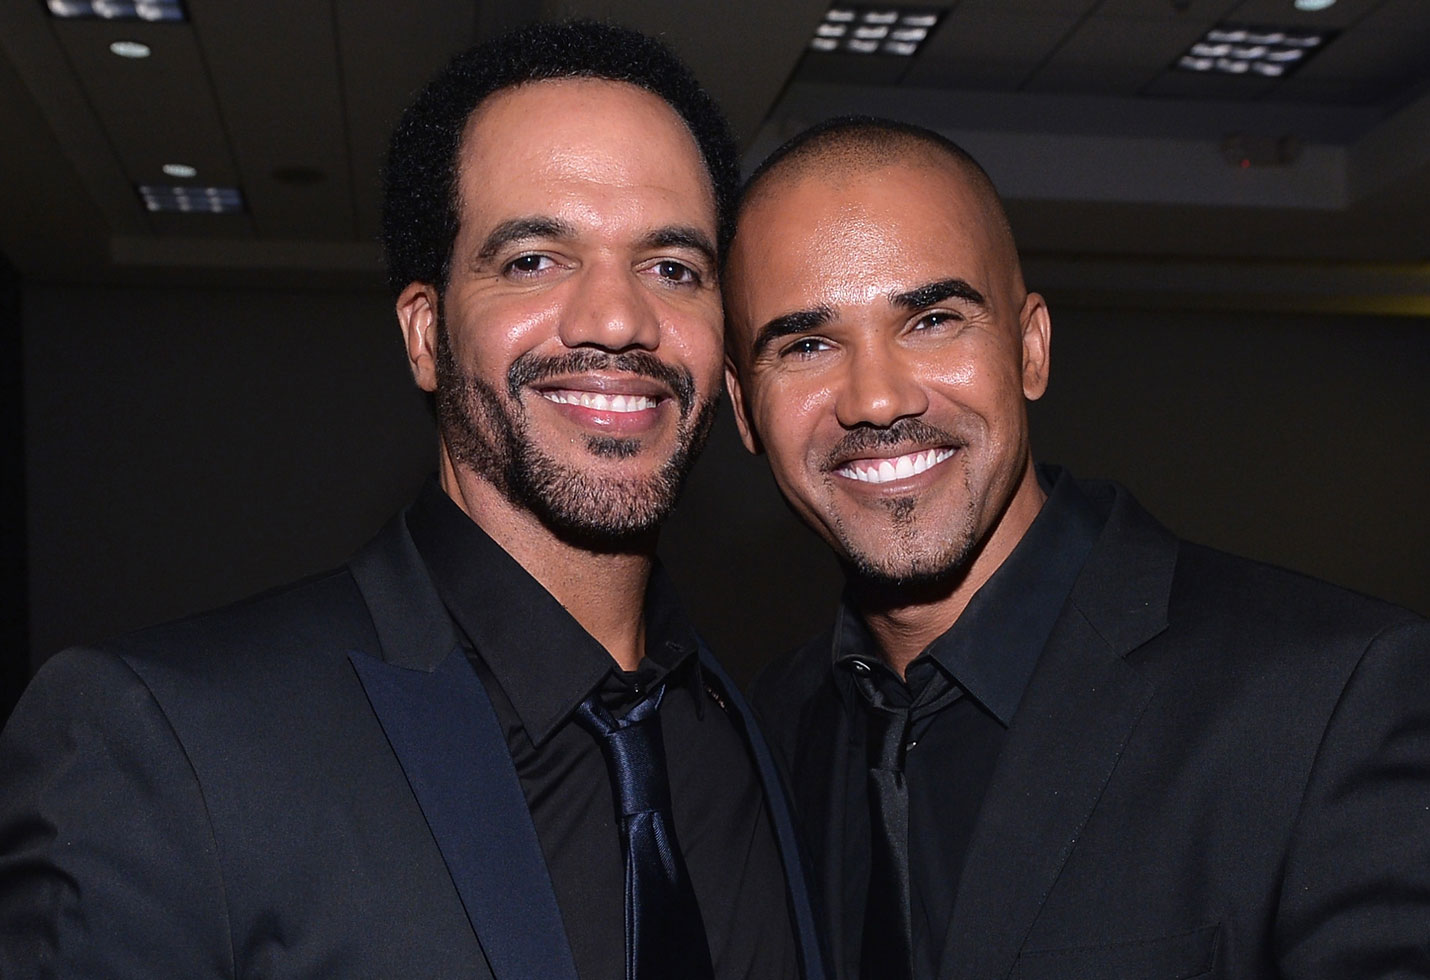 Shemar moore the young and the restless kristoff st john tribute eileen davidson